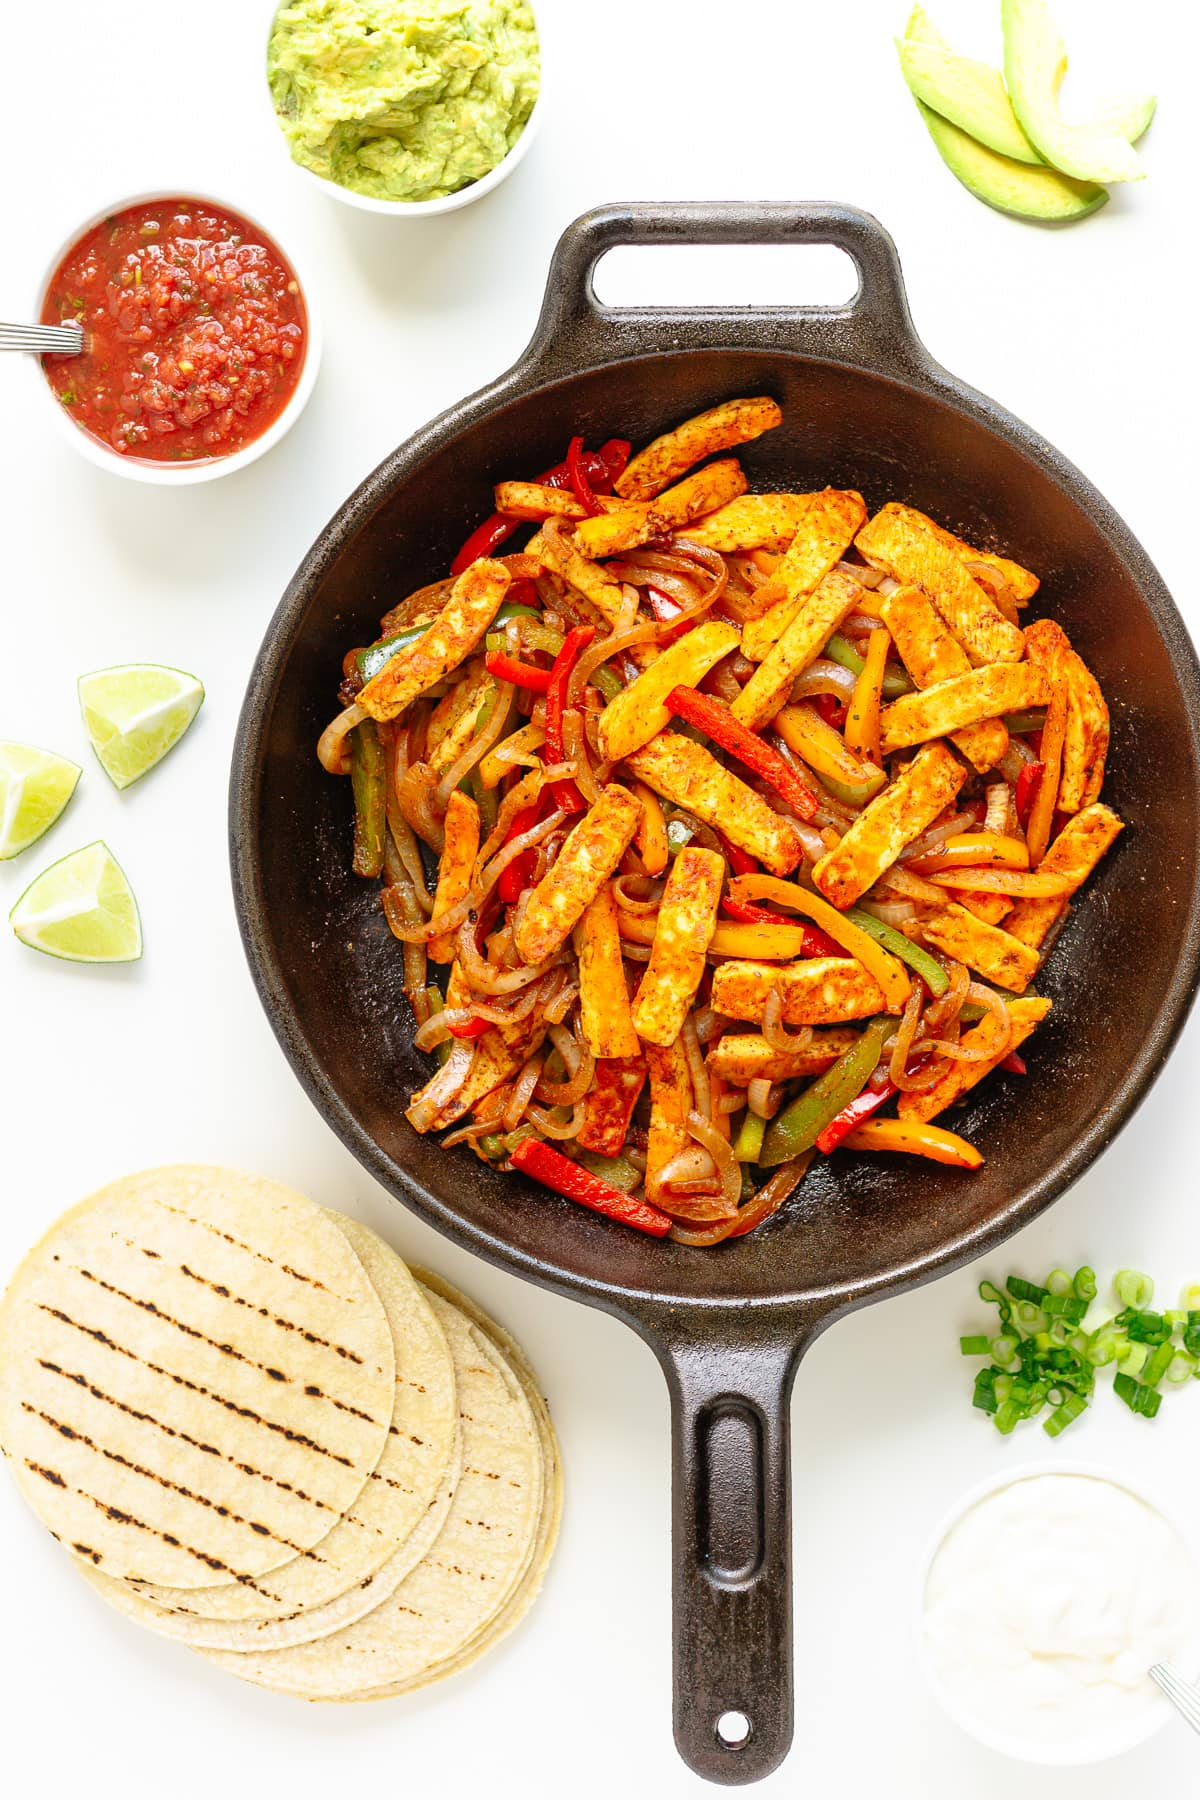 Halloumi veggie fajita mixture in a cast iron skillet with tortillas and a variety of toppings around it.